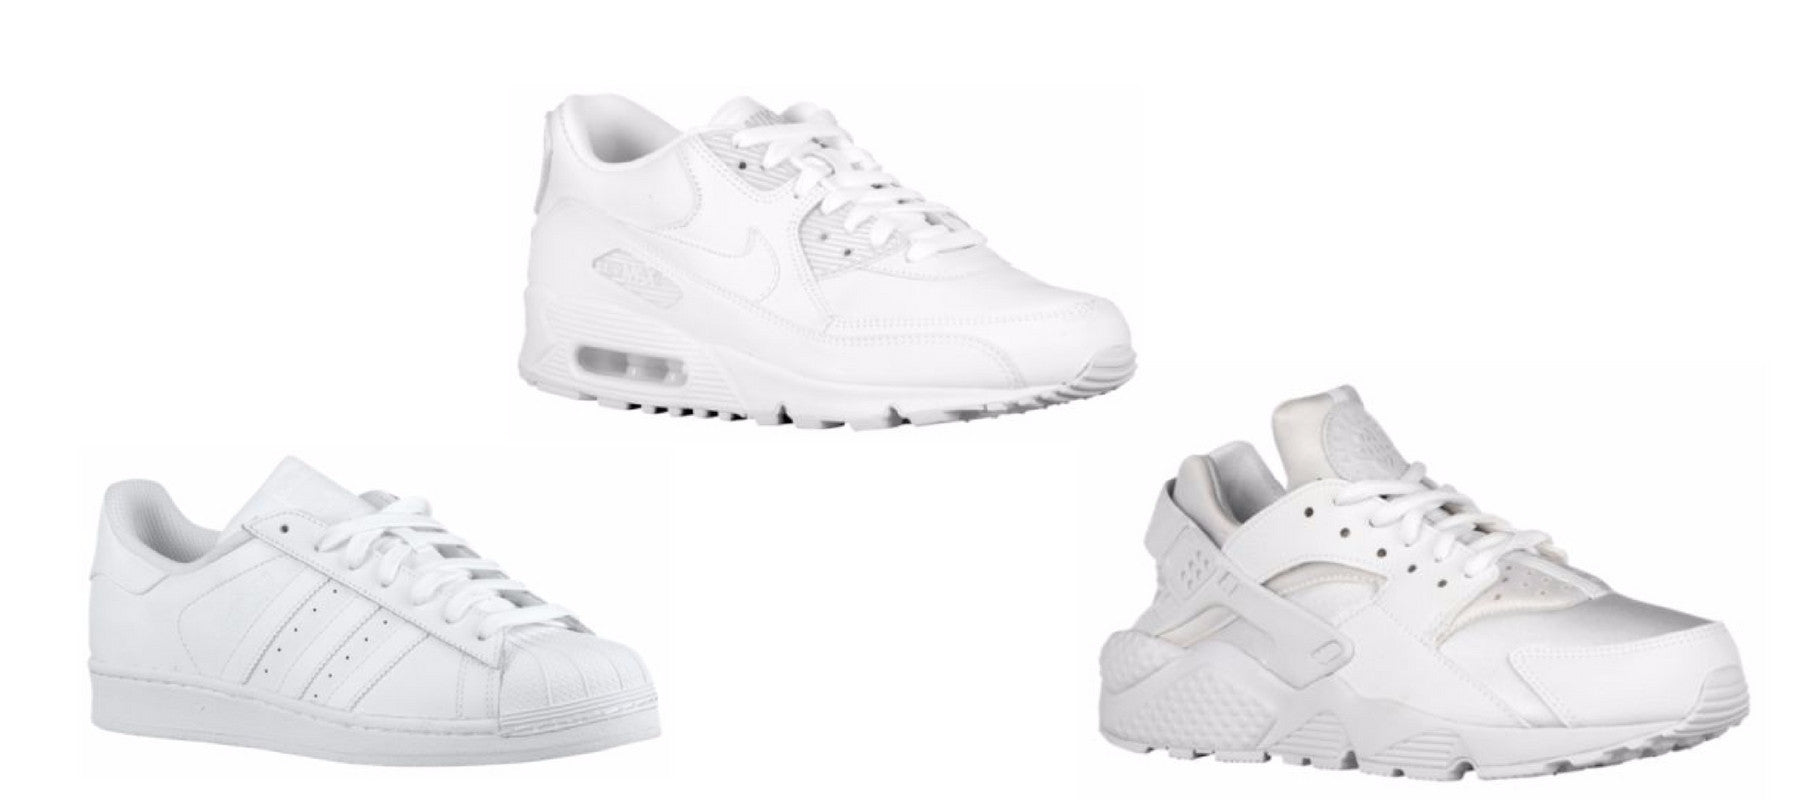 Keeping Your White Sneakers White